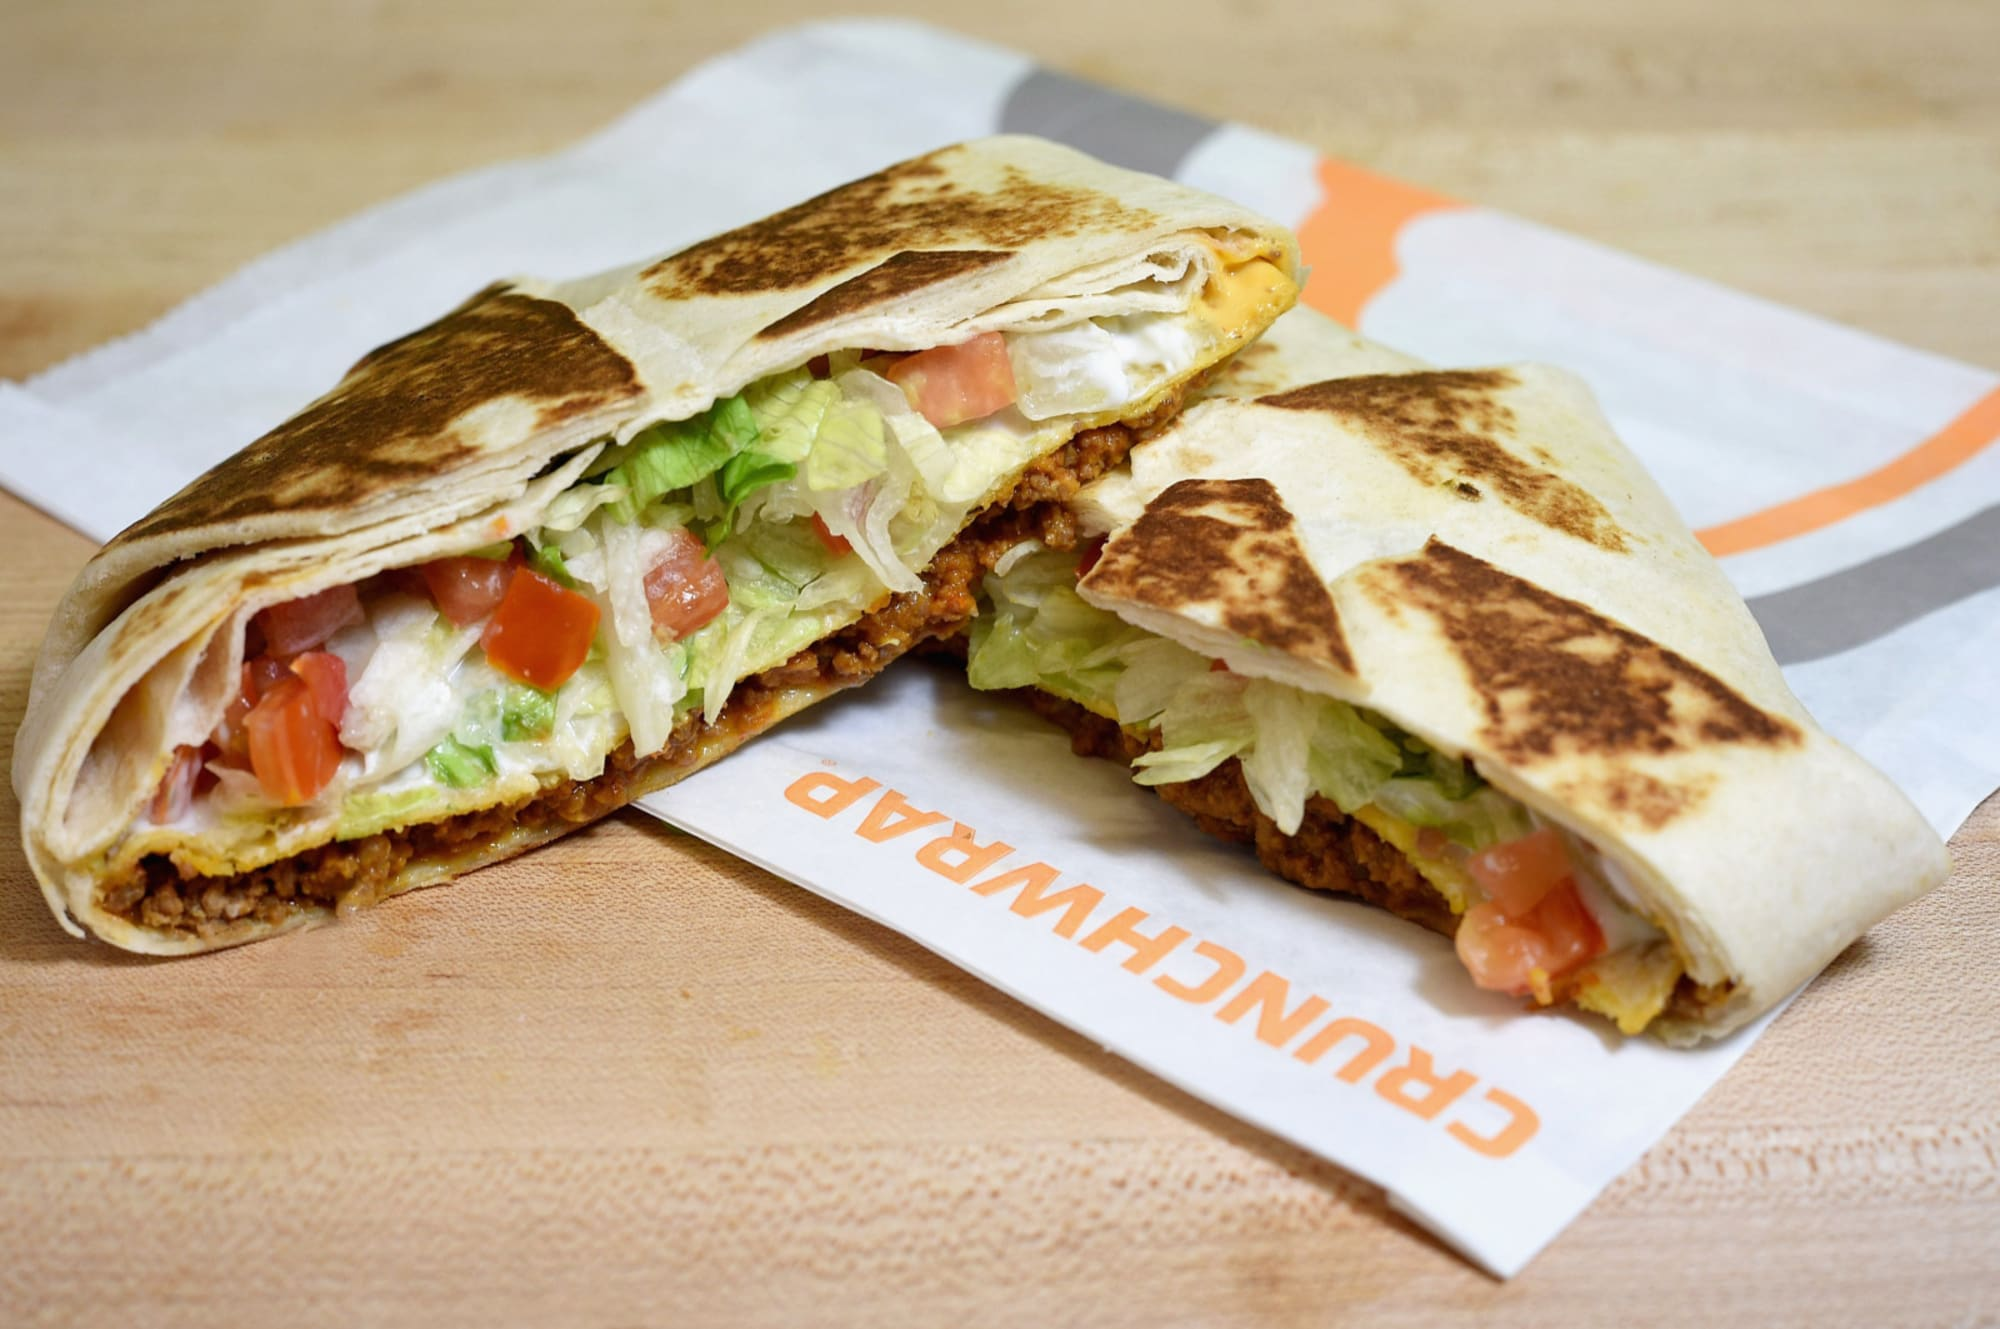 Taco Bell ditches more fan favorites, adds filler items as replacements